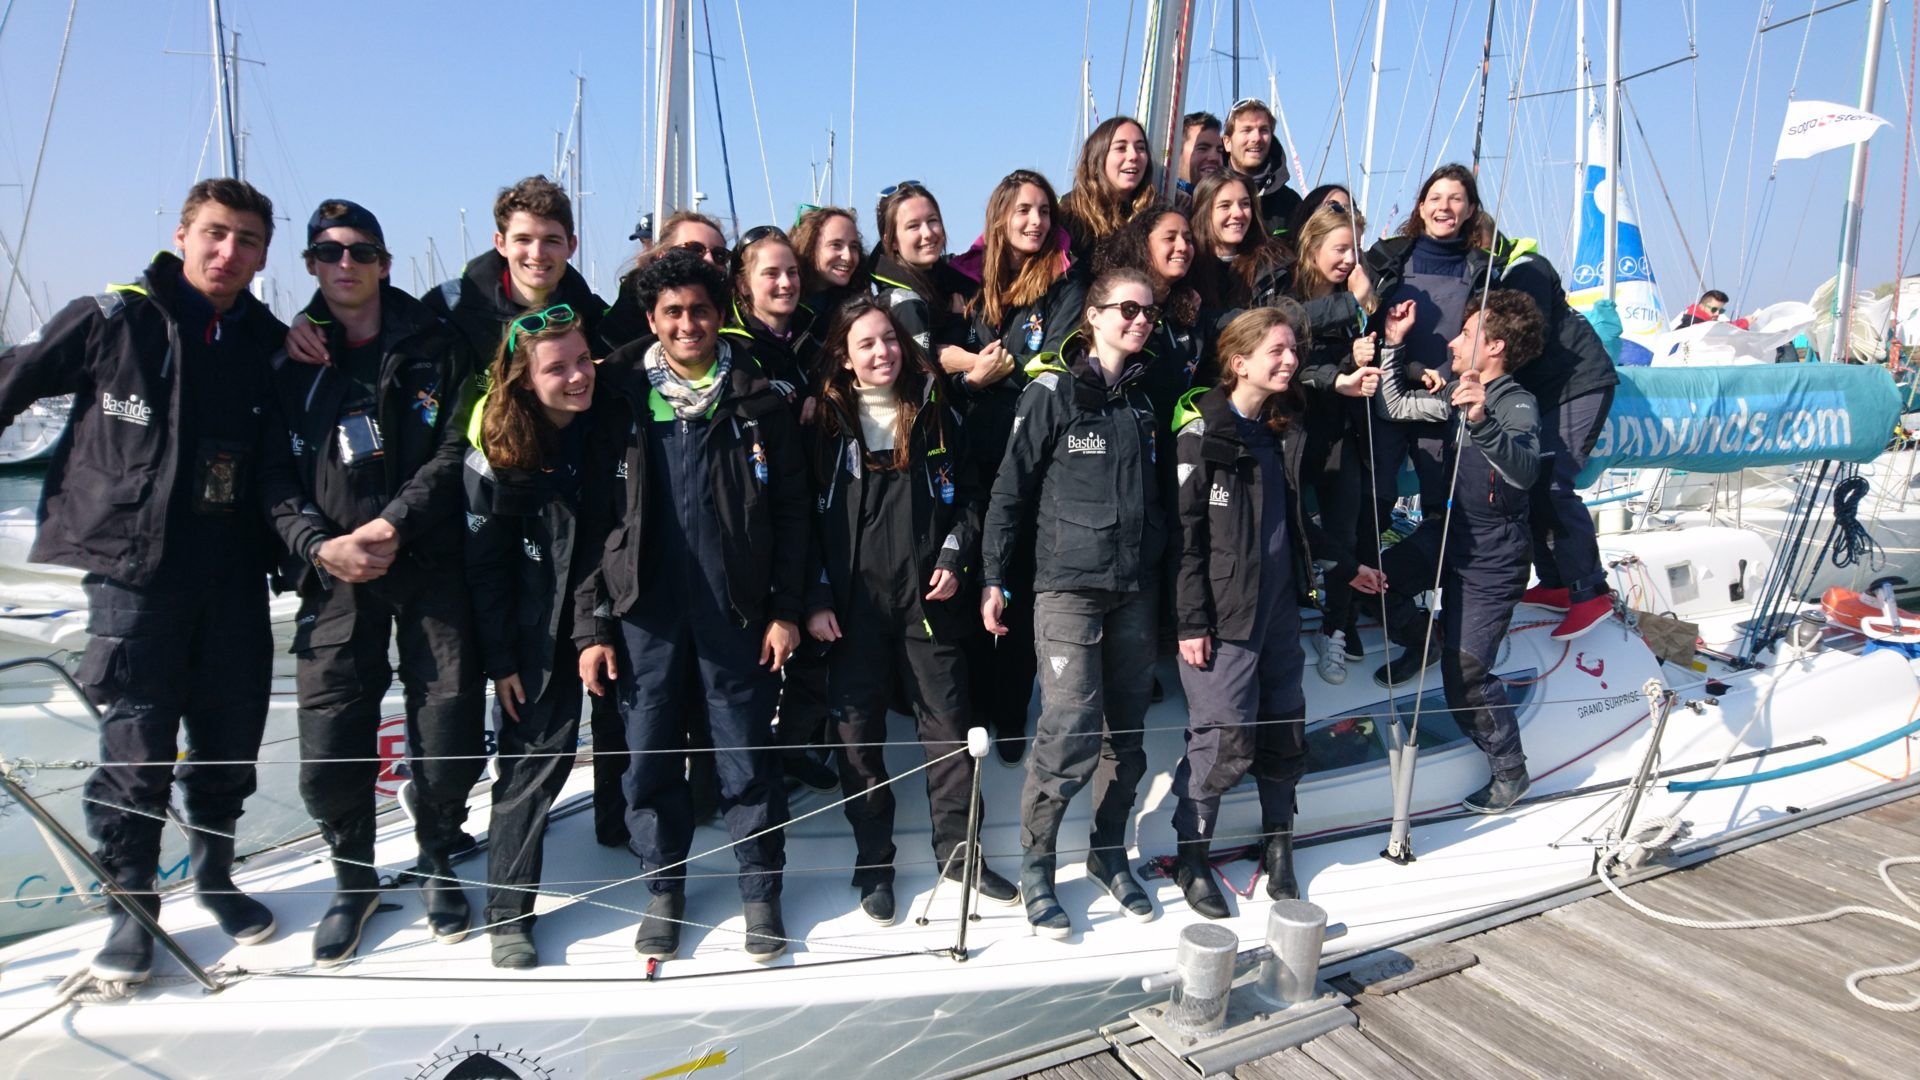 Equipages Mixtes à la CCEDHEC - Team Winds 2019